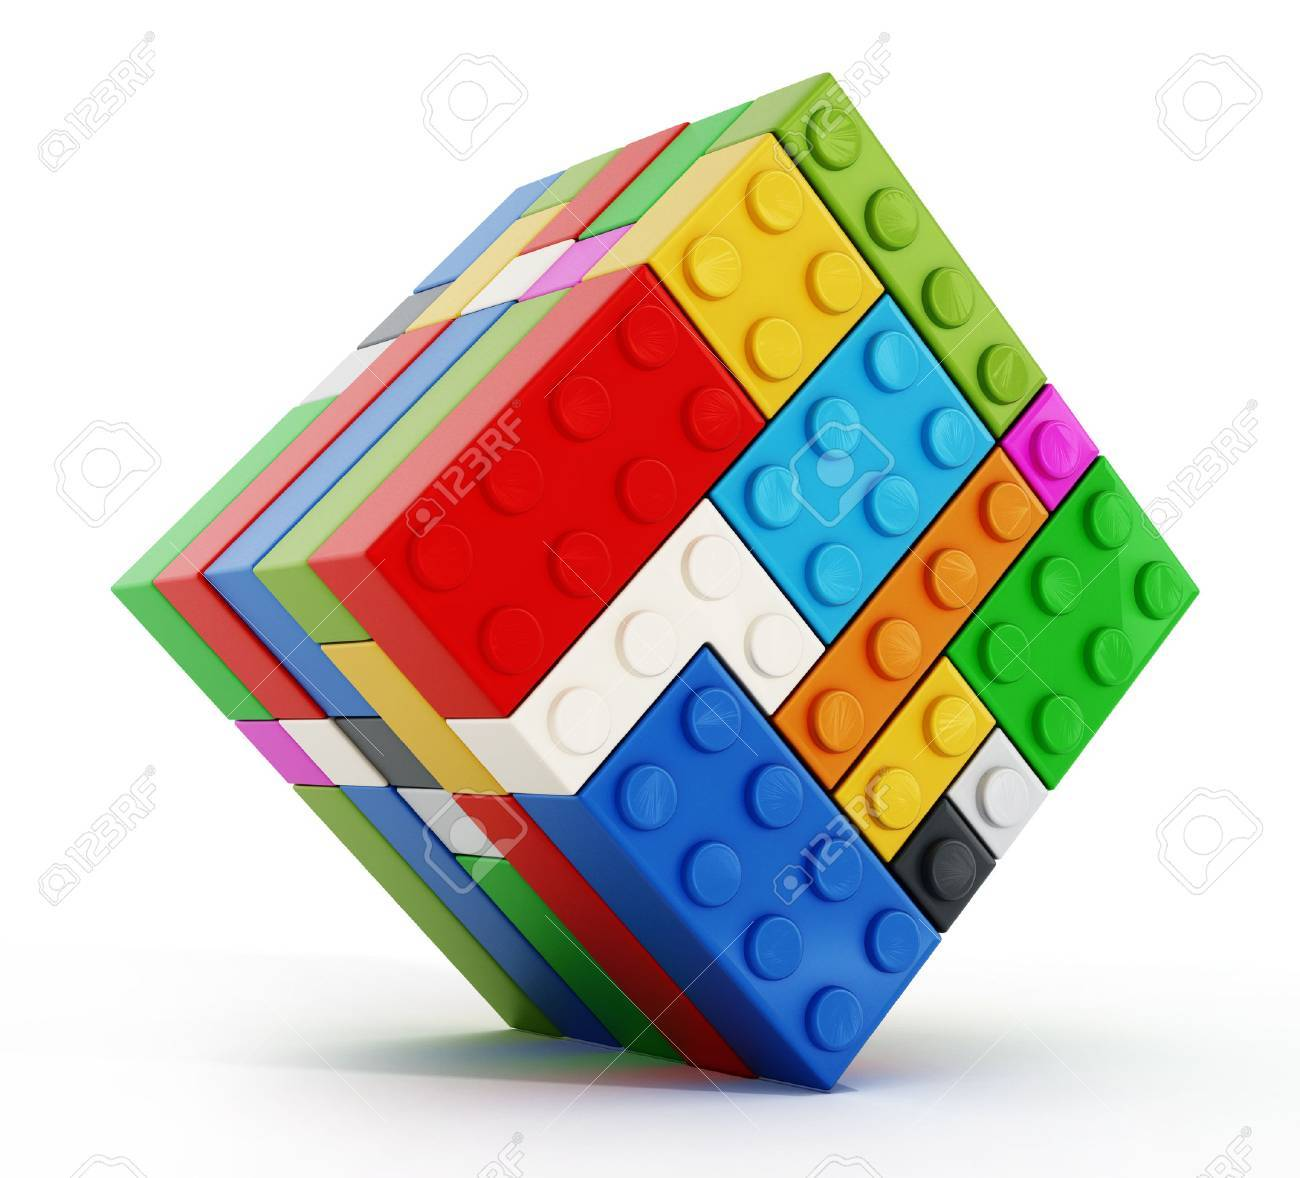 Multi colored toy blocks cube isolated on white background - 53585319